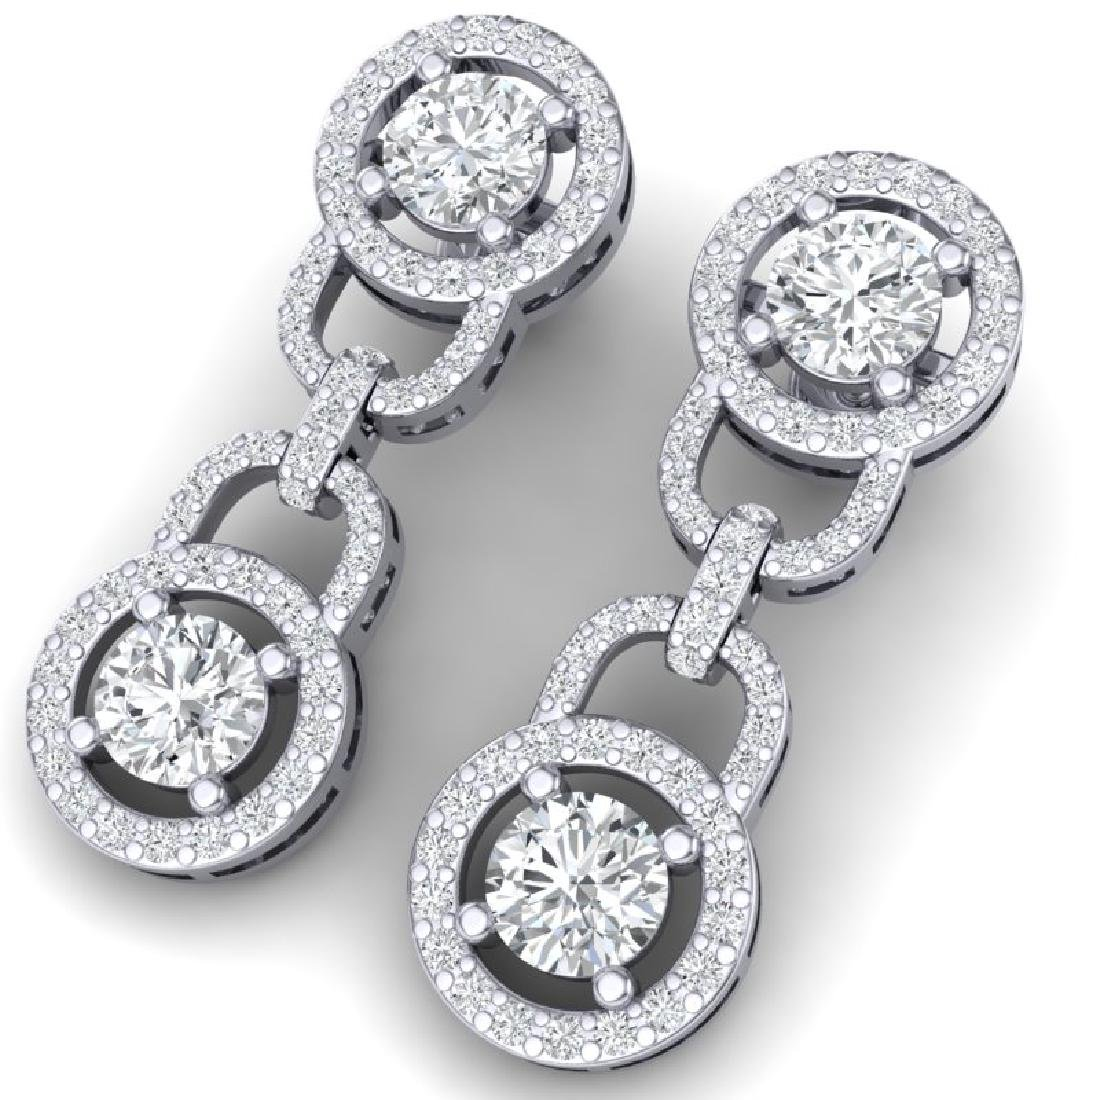 4 CTW Certified SI/I Diamond Halo Earrings 18K White